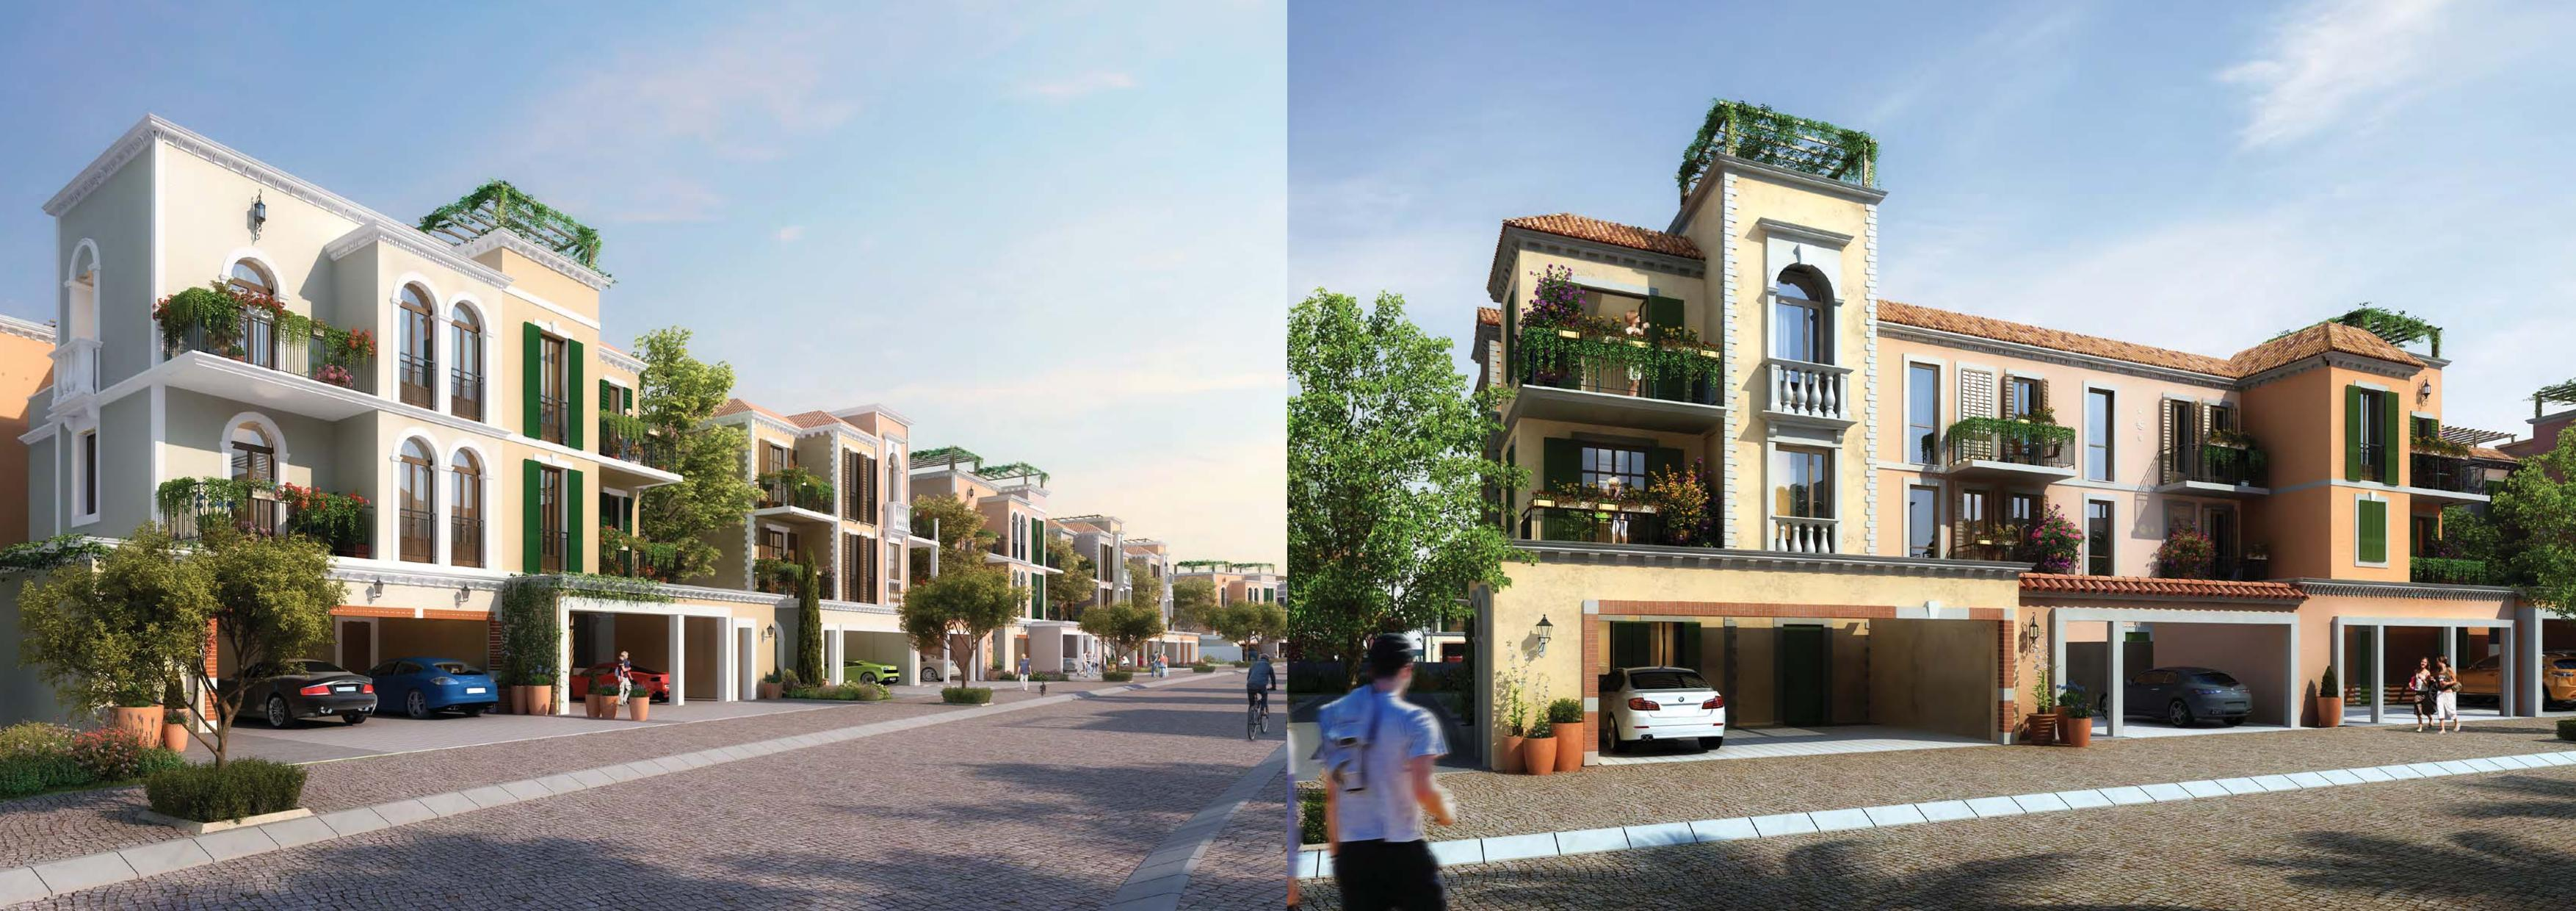 Multiple options available at Sur lamer 4 & 5 Bed